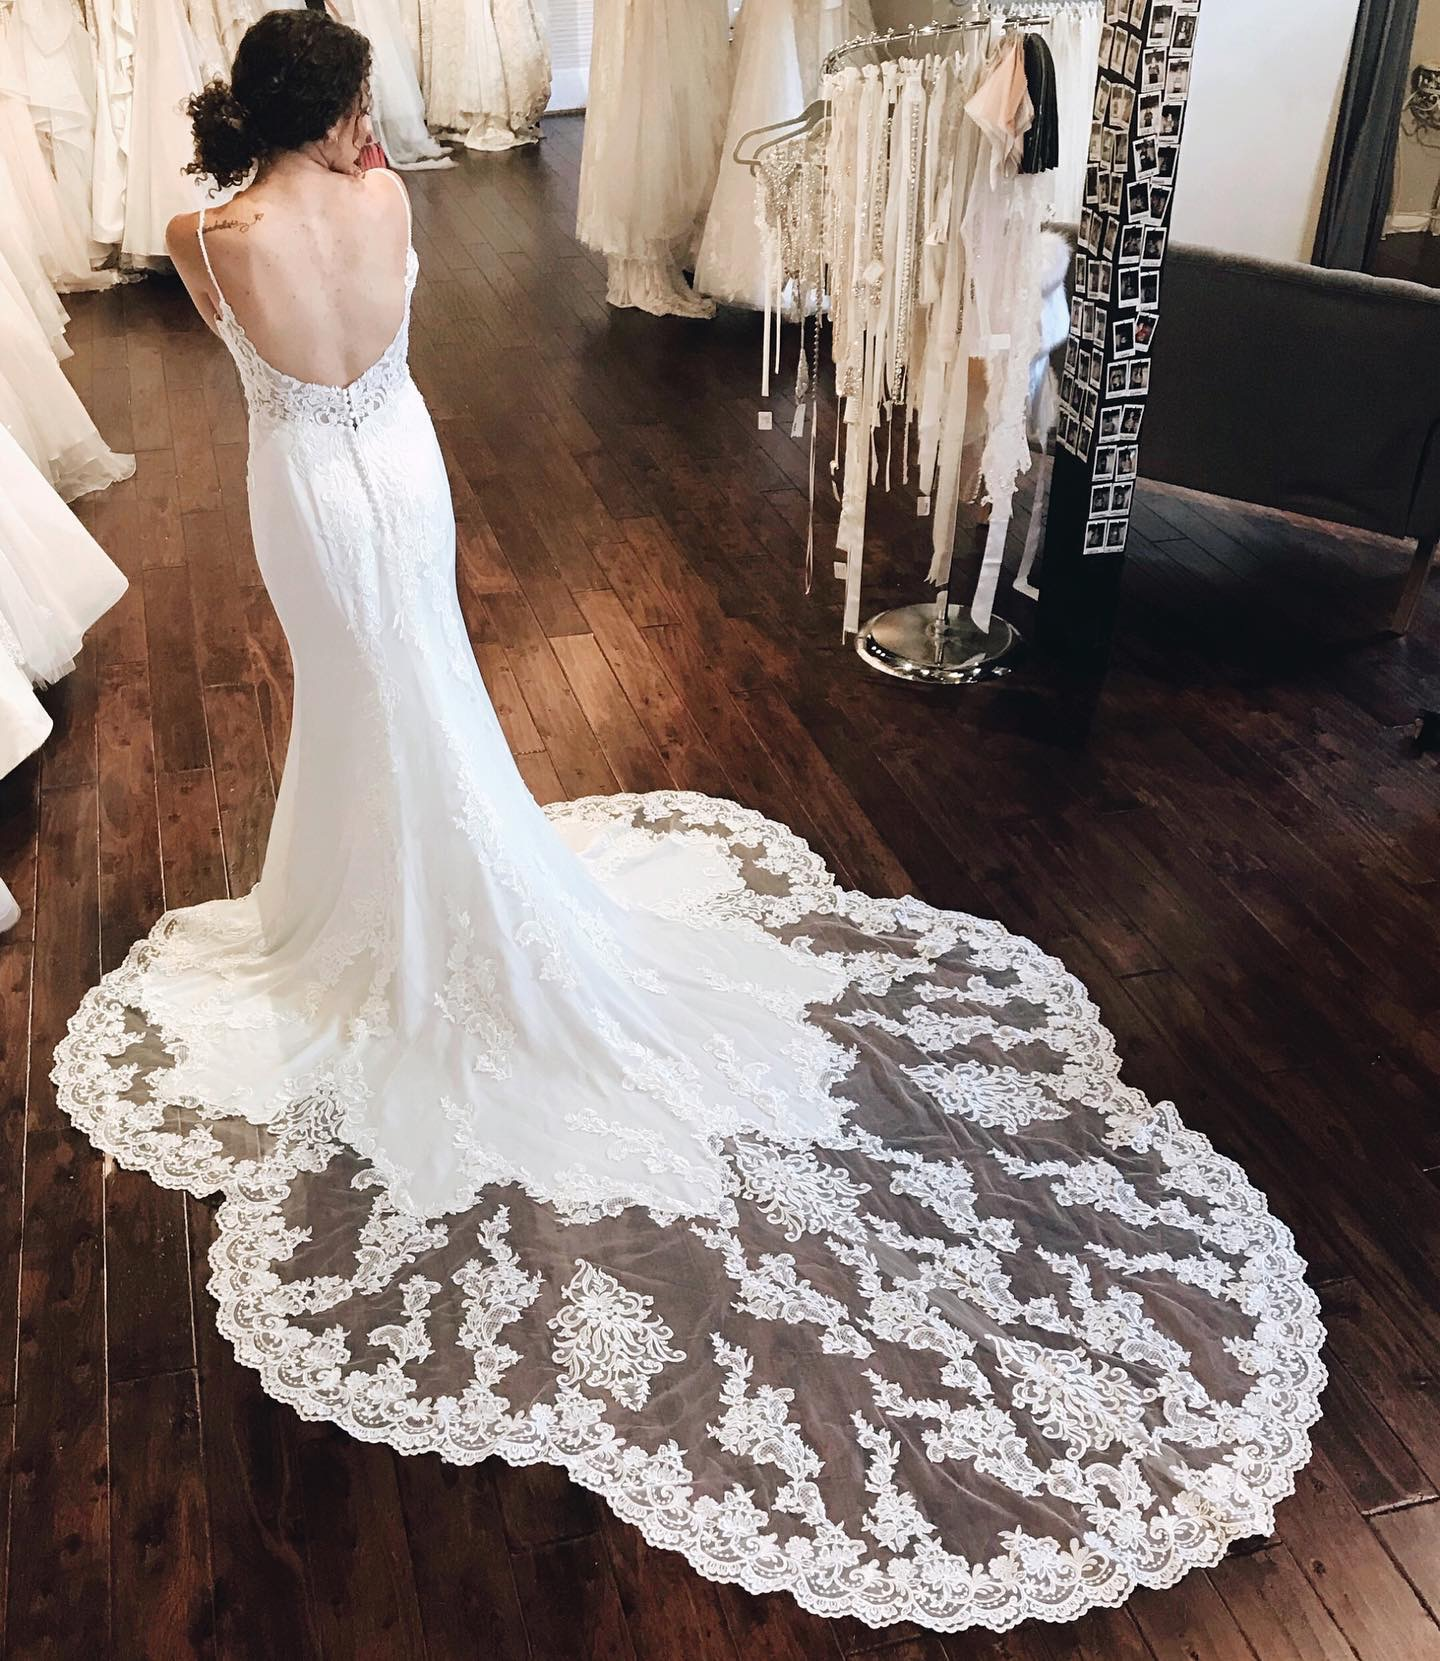 Find the perfect wedding dress!